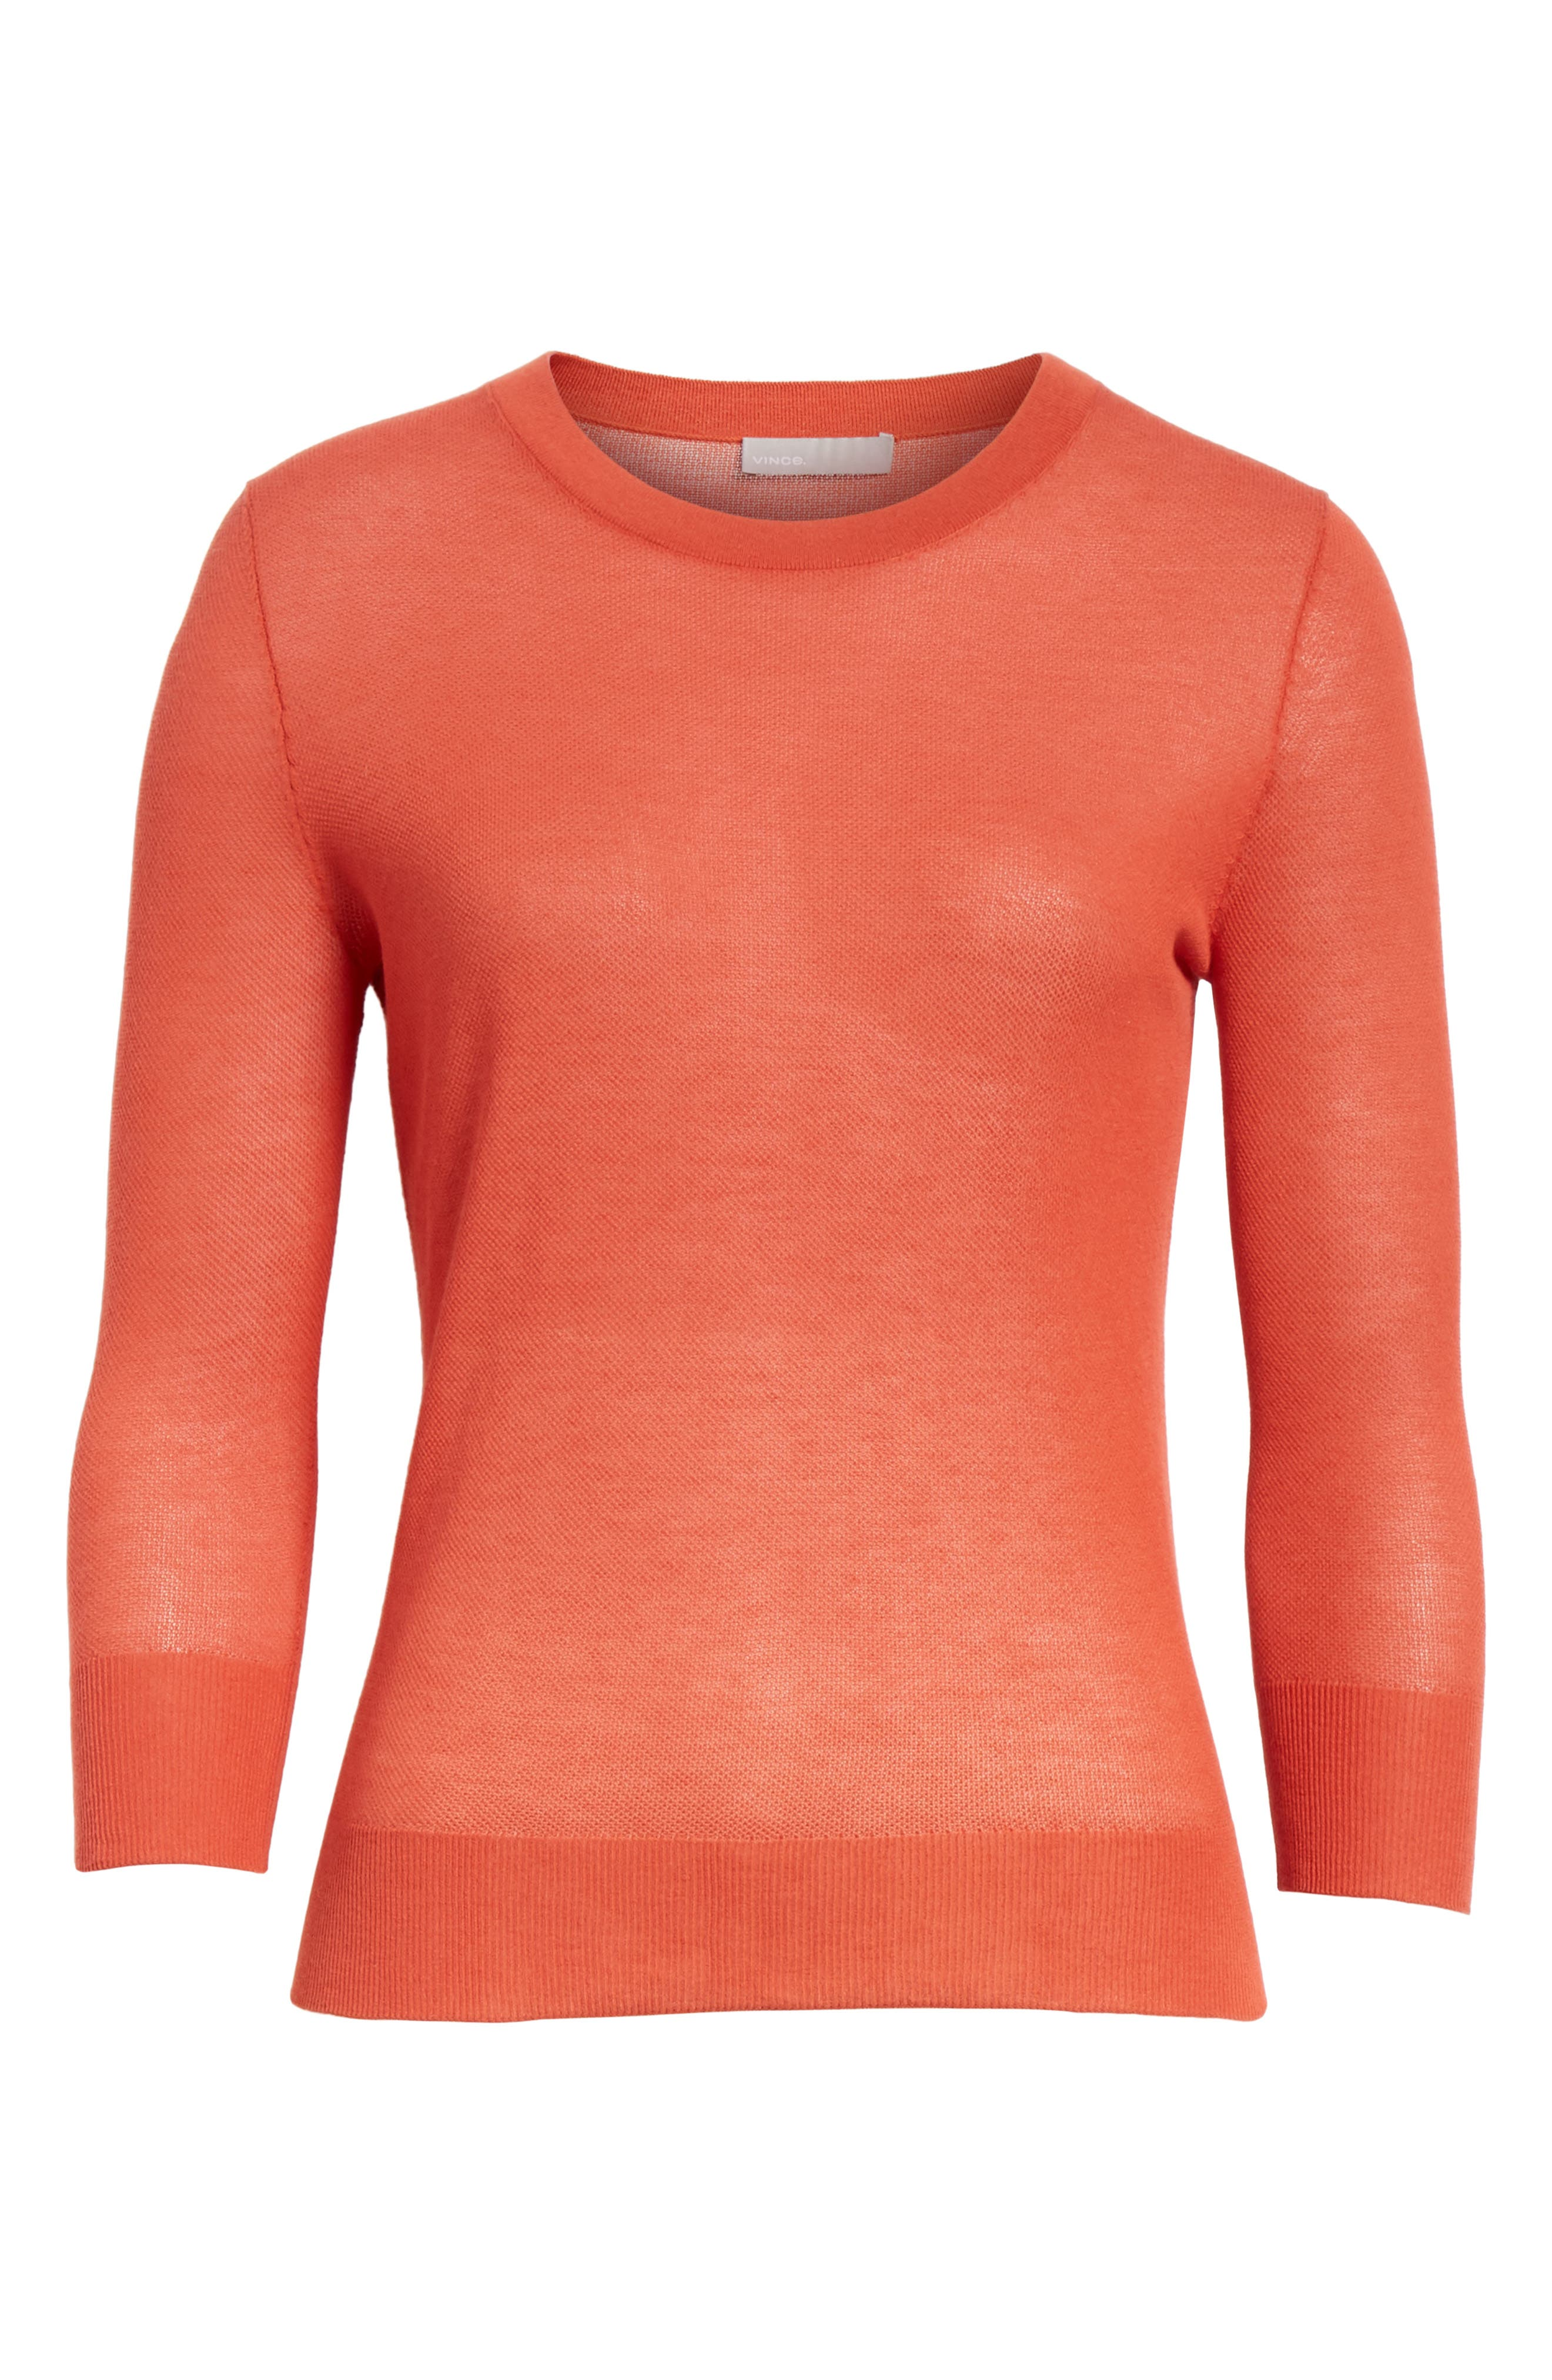 Textured Cotton Pullover Sweater,                             Alternate thumbnail 6, color,                             PAPRIKA